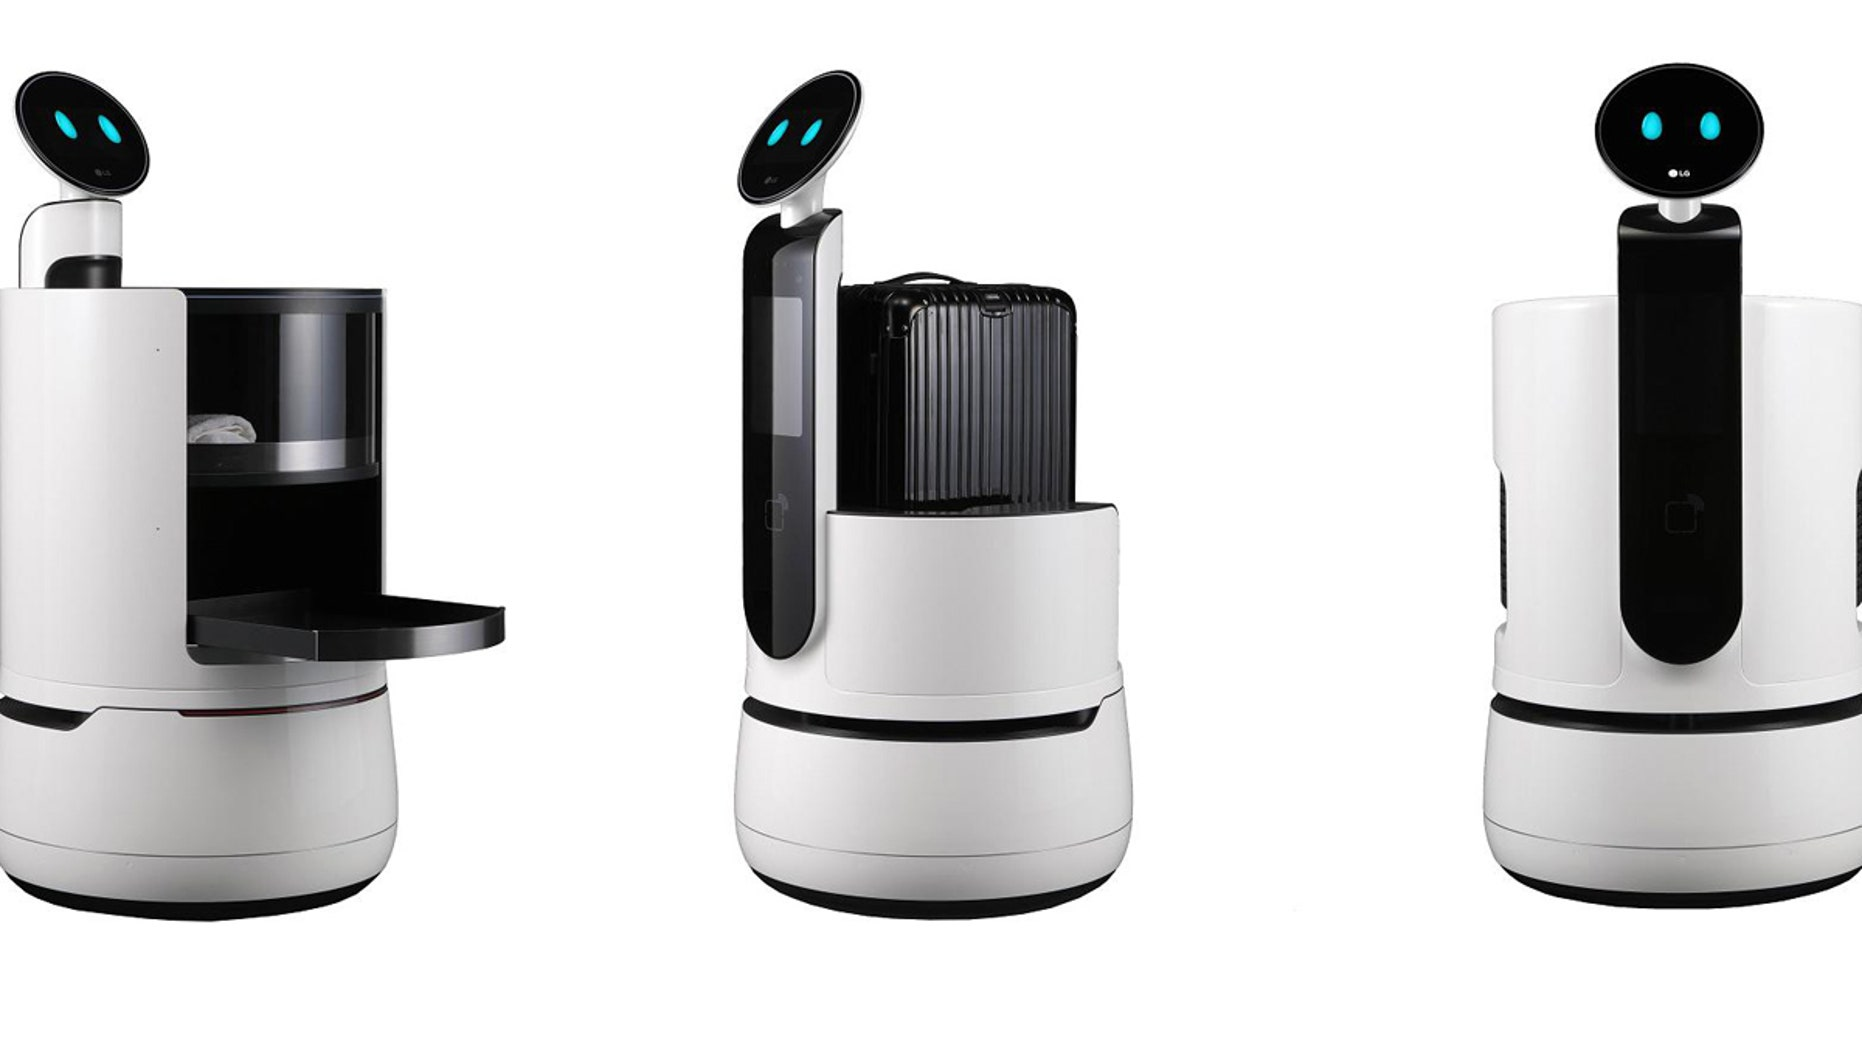 The three new concept robots from LG Electronics are aimed at the services industry, in areas like hotels, airports and supermarkets.